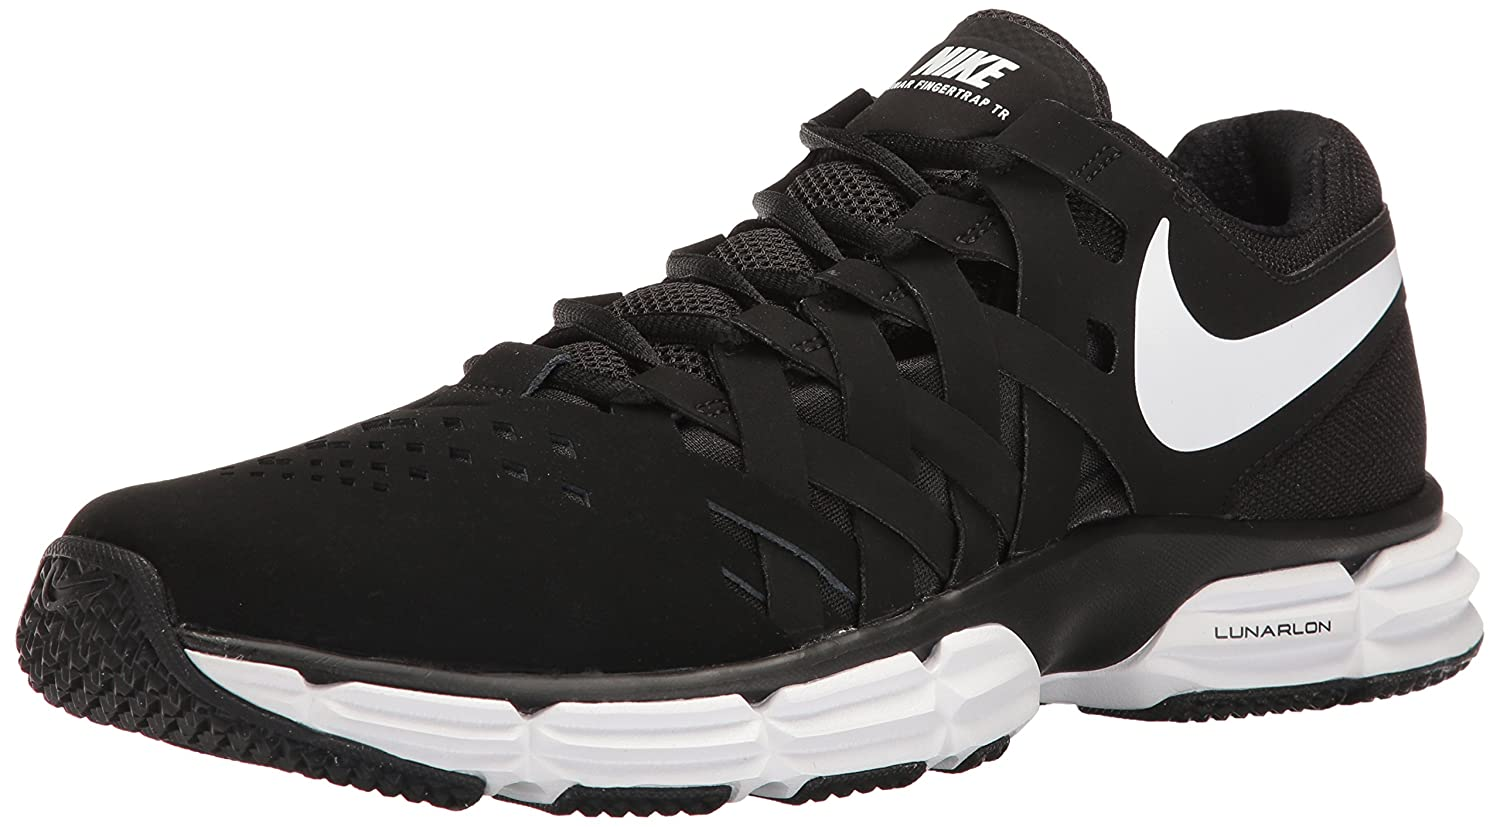 NIKE Men's Lunar Fingertrap Cross Trainer B01HH8NN7Y 14 D(M) US|Black/White - Black